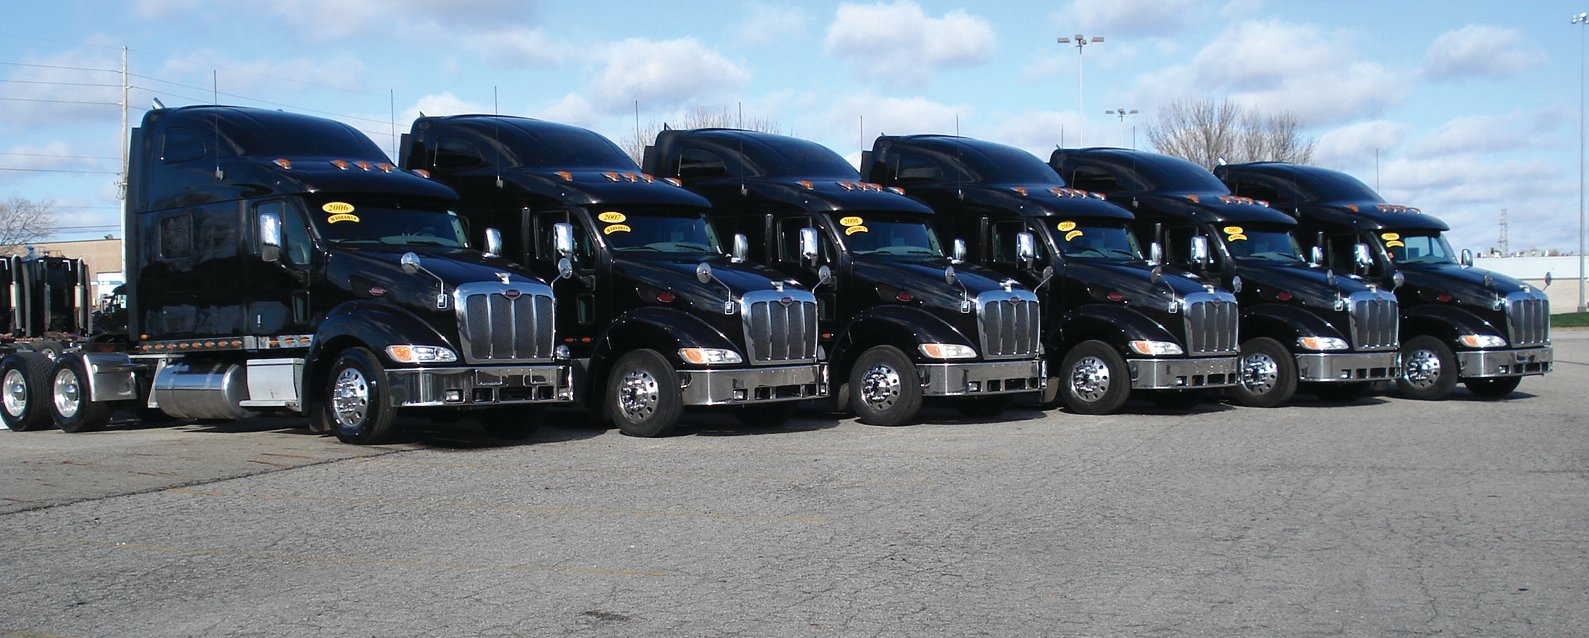 Truck Buying Options New Used Buy Or Lease Fleet